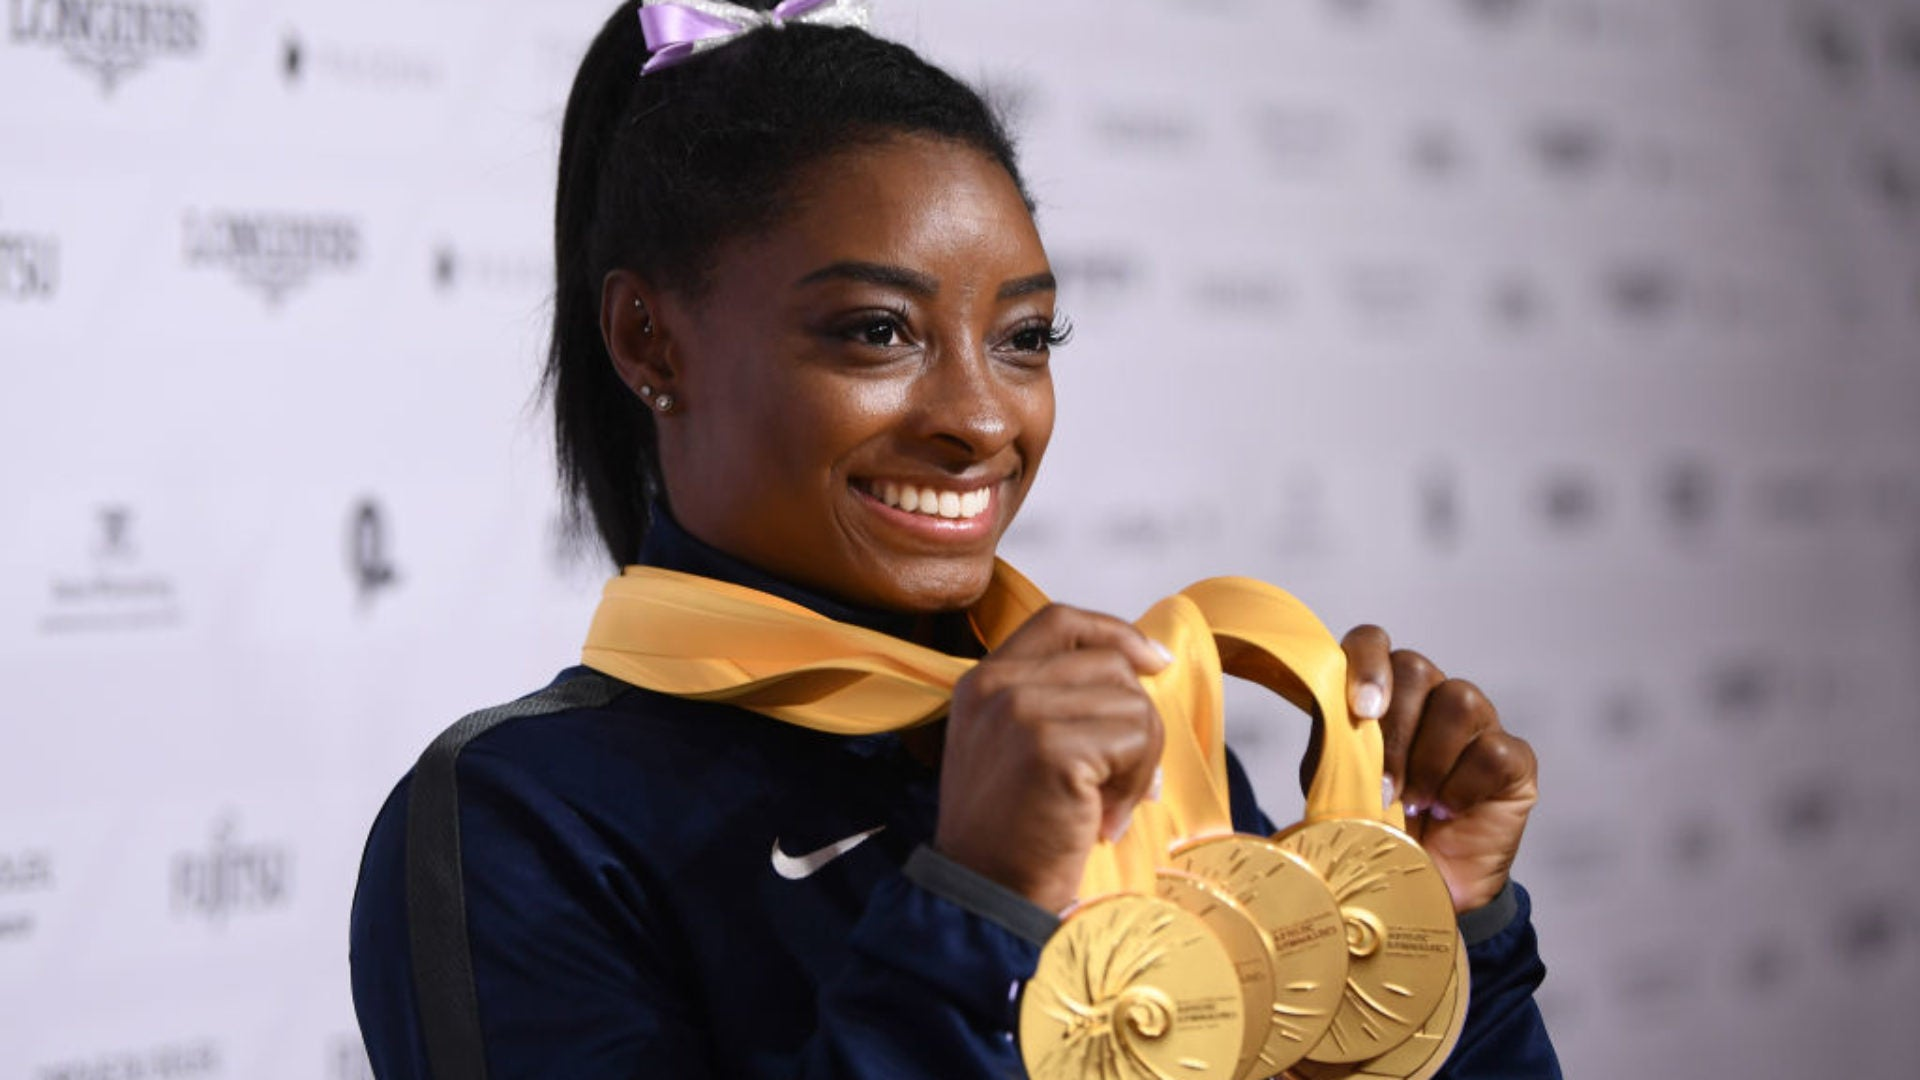 Simone Biles Named Olympic Female Athlete of the Year By Team USA